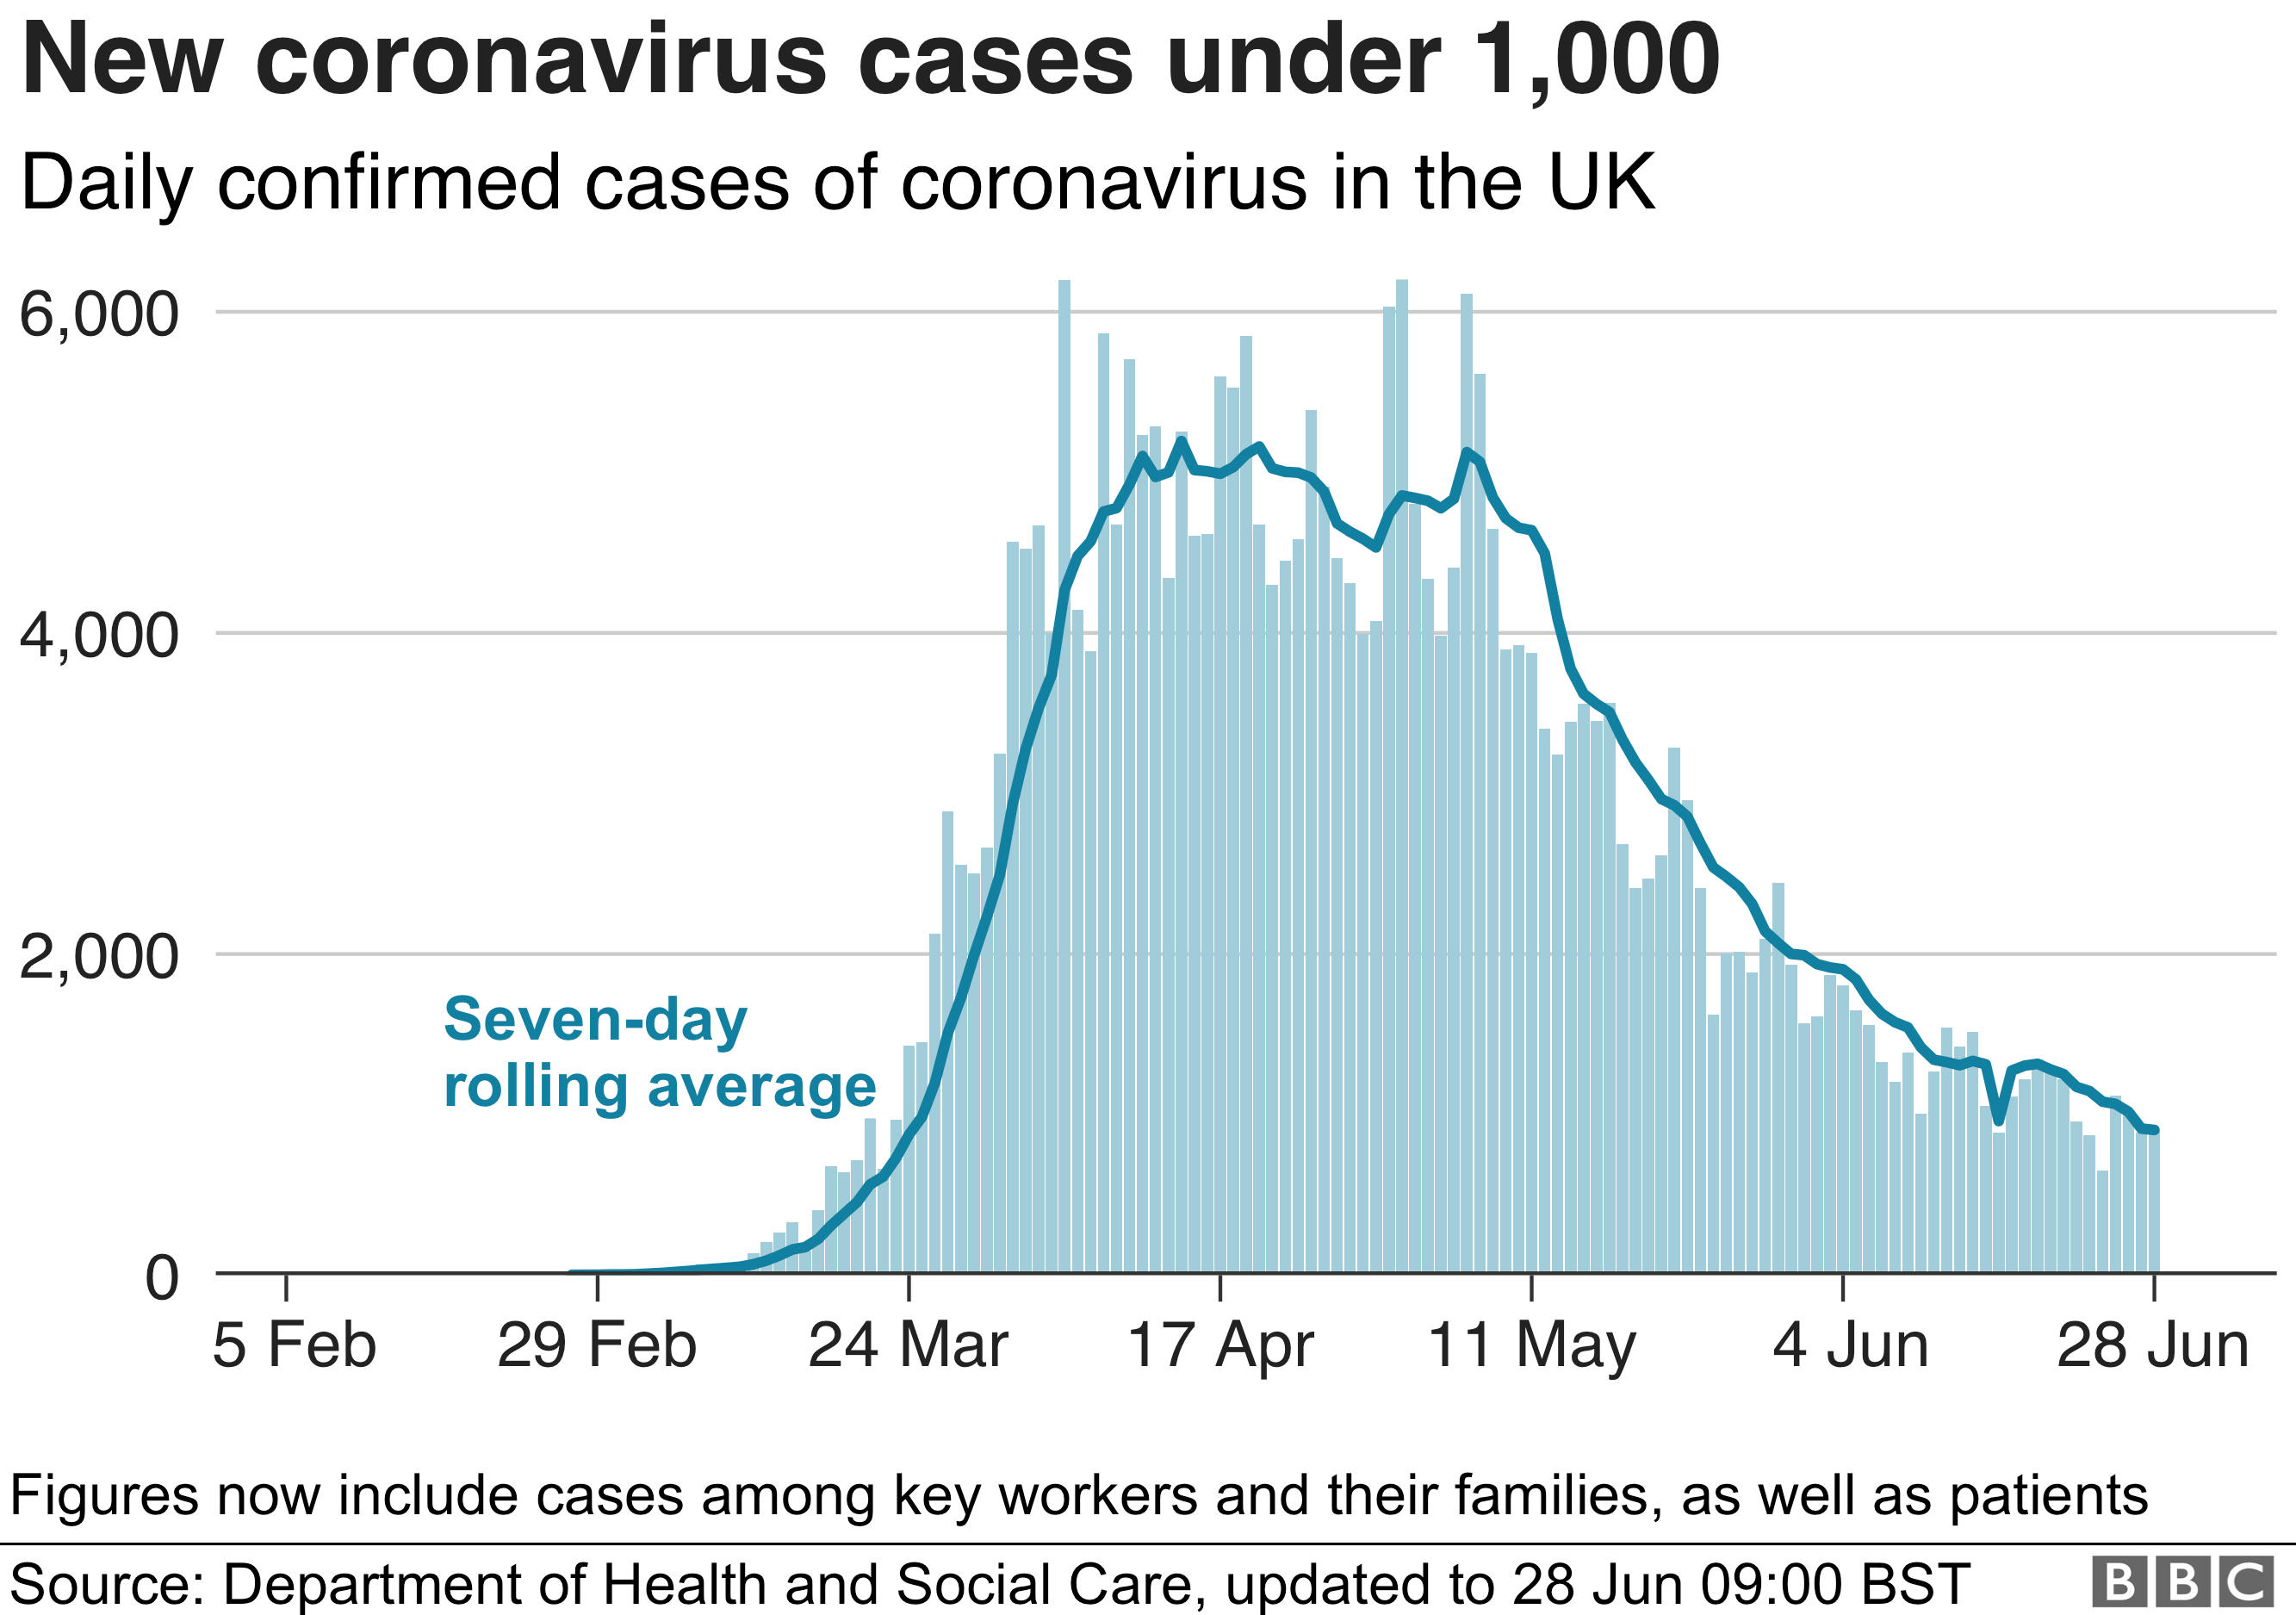 Chart showing daily confirmed cases showing a gradual decline since peaking in April